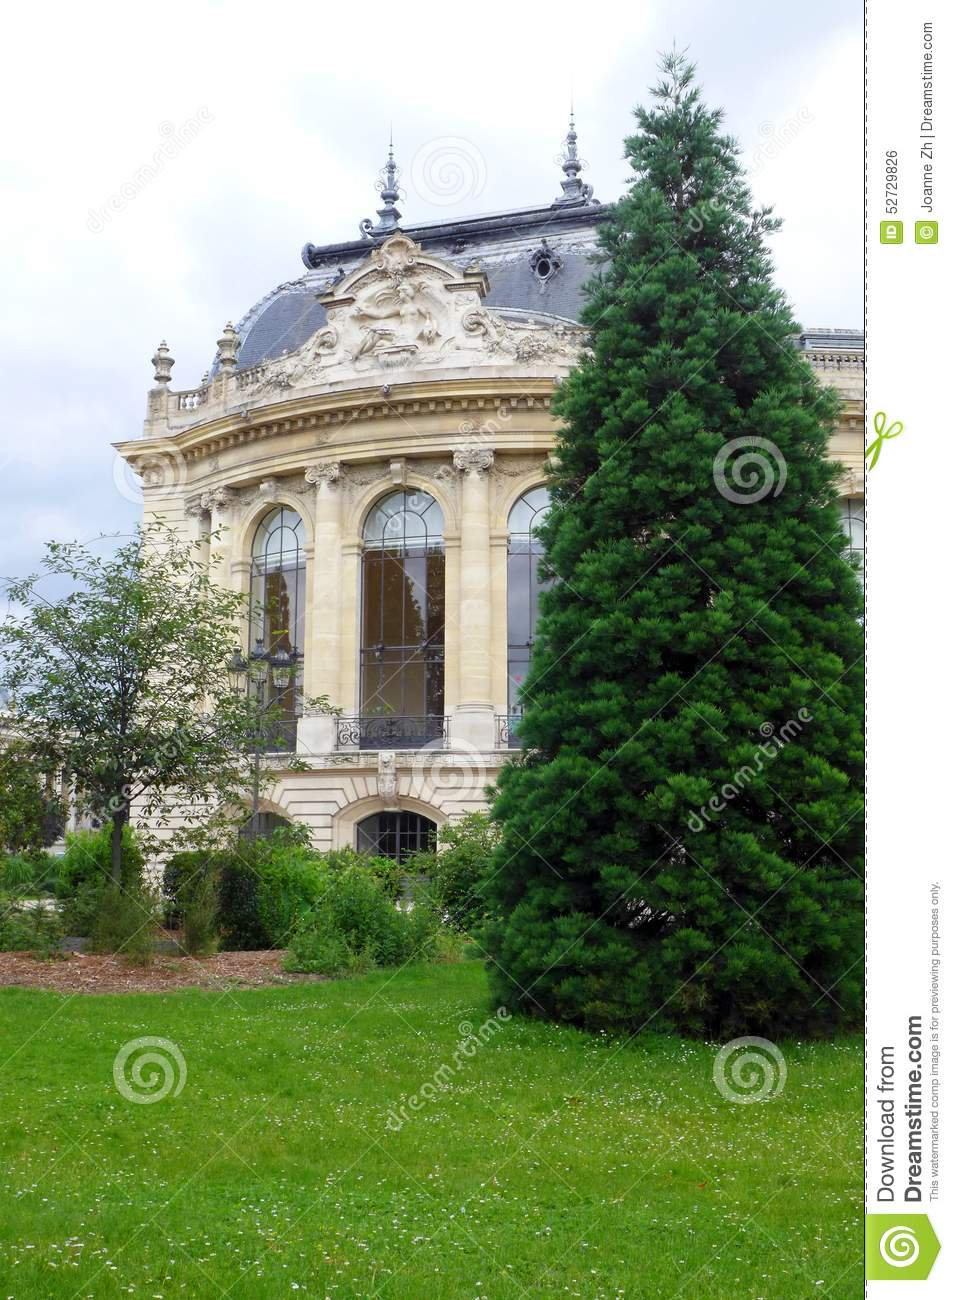 petit palais paris exterior towards river seine stock. Black Bedroom Furniture Sets. Home Design Ideas